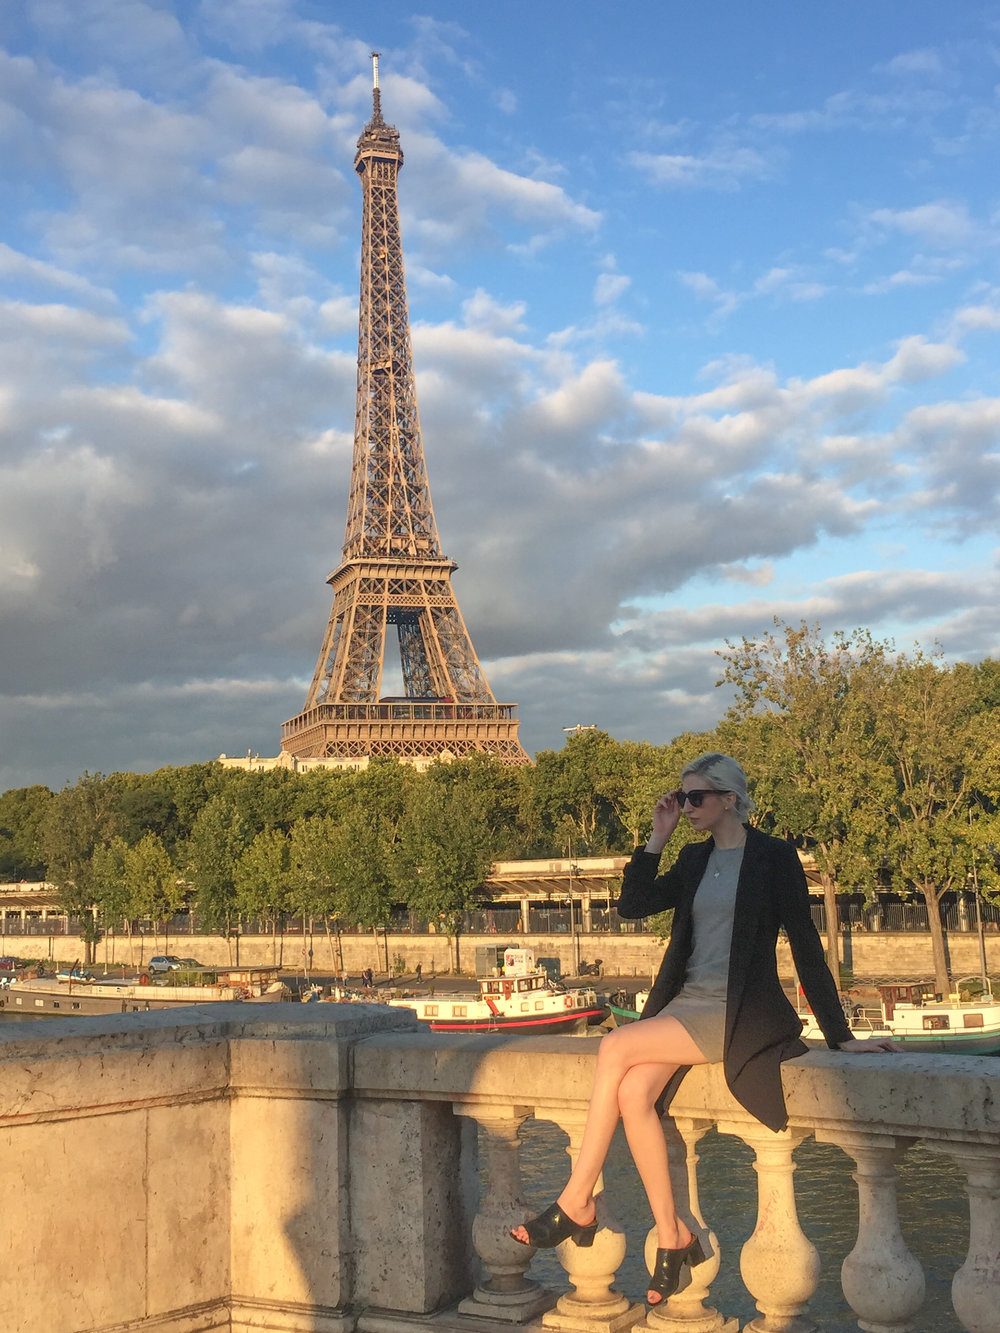 Audra Koch - Paris France, Eiffel Tower